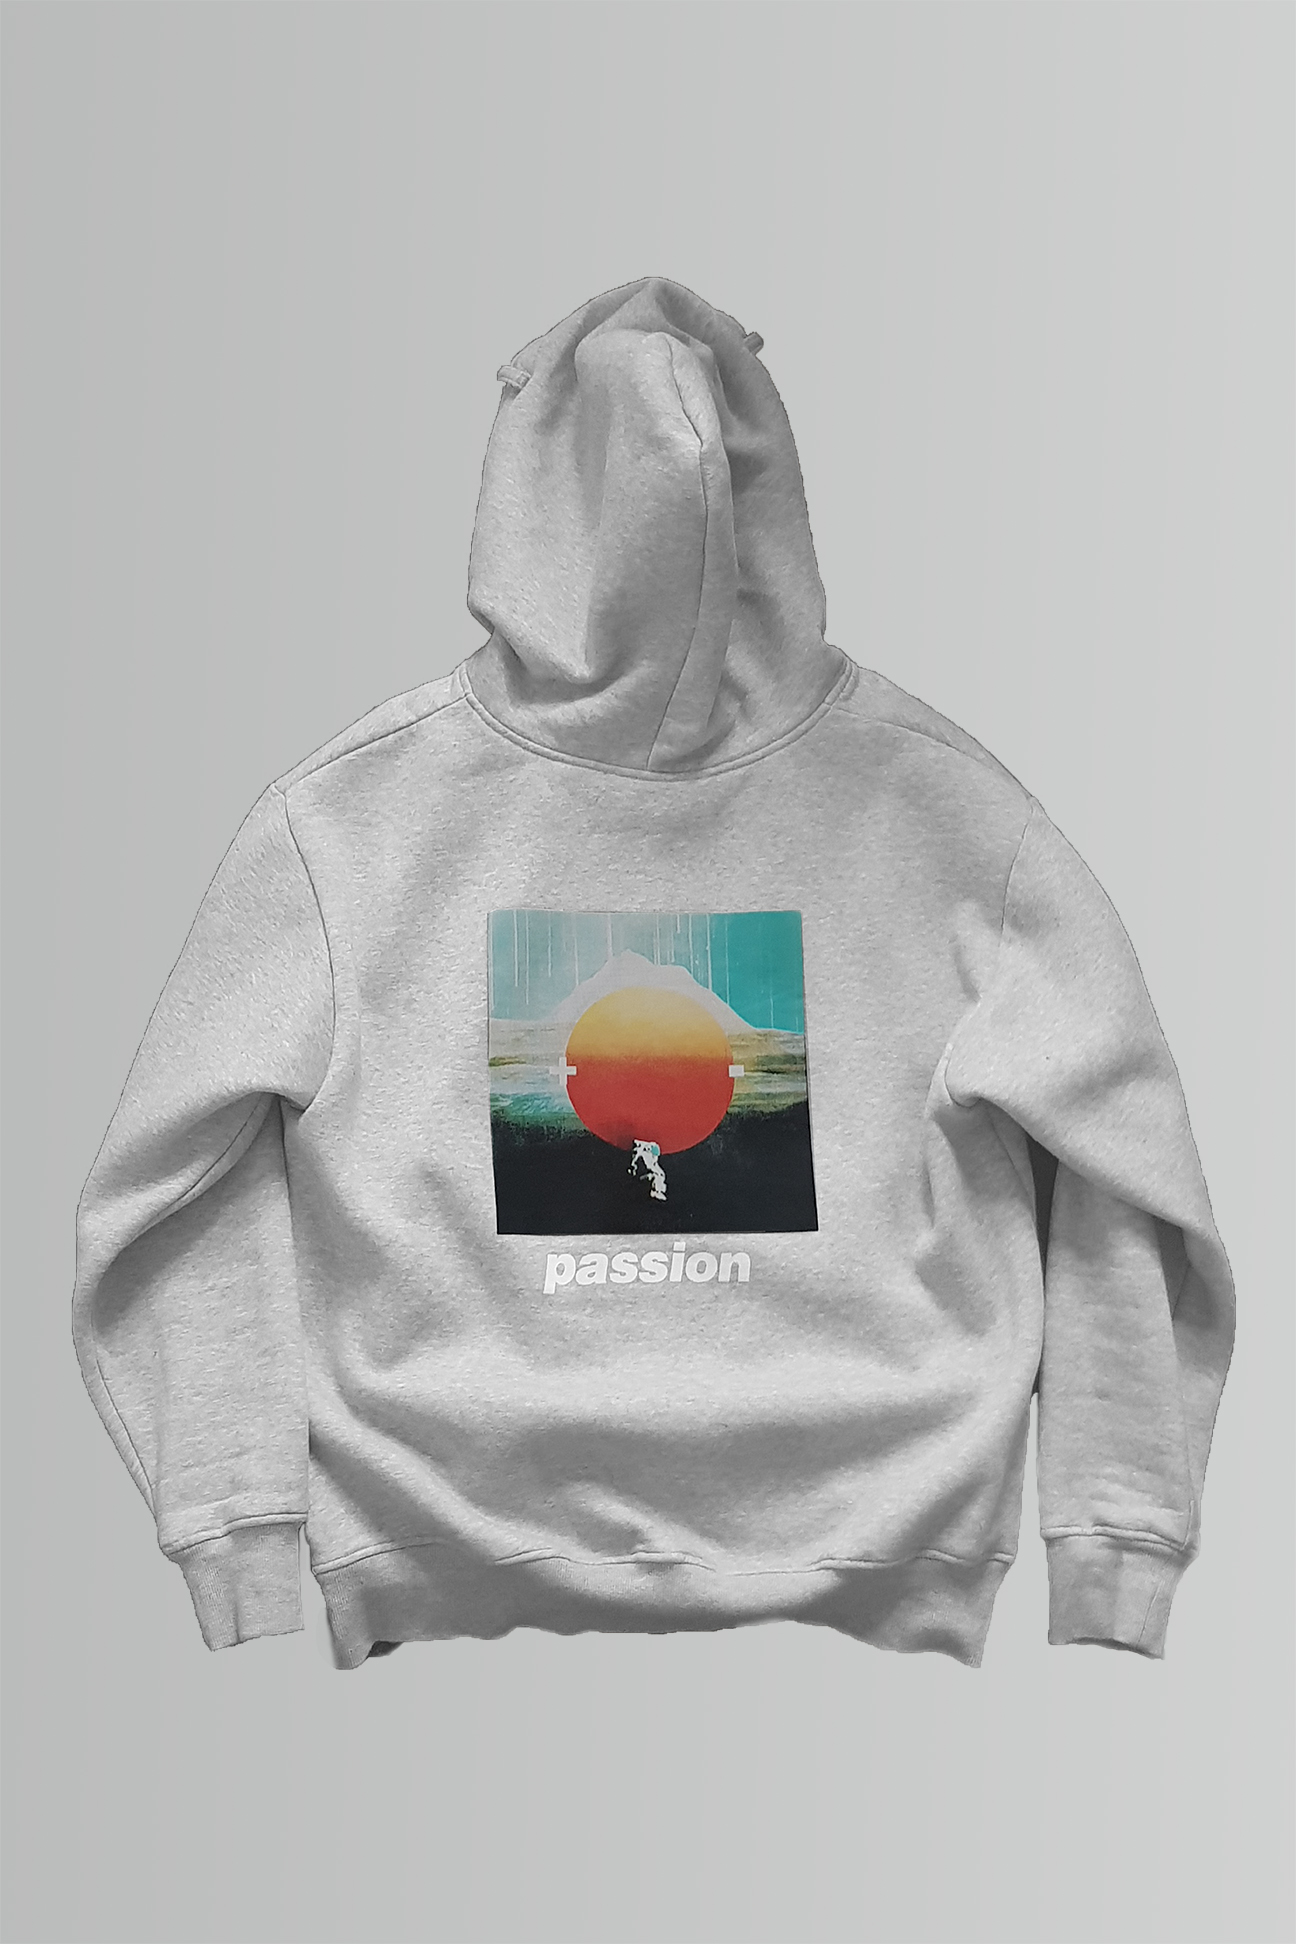 Passion Hoodie in Grey